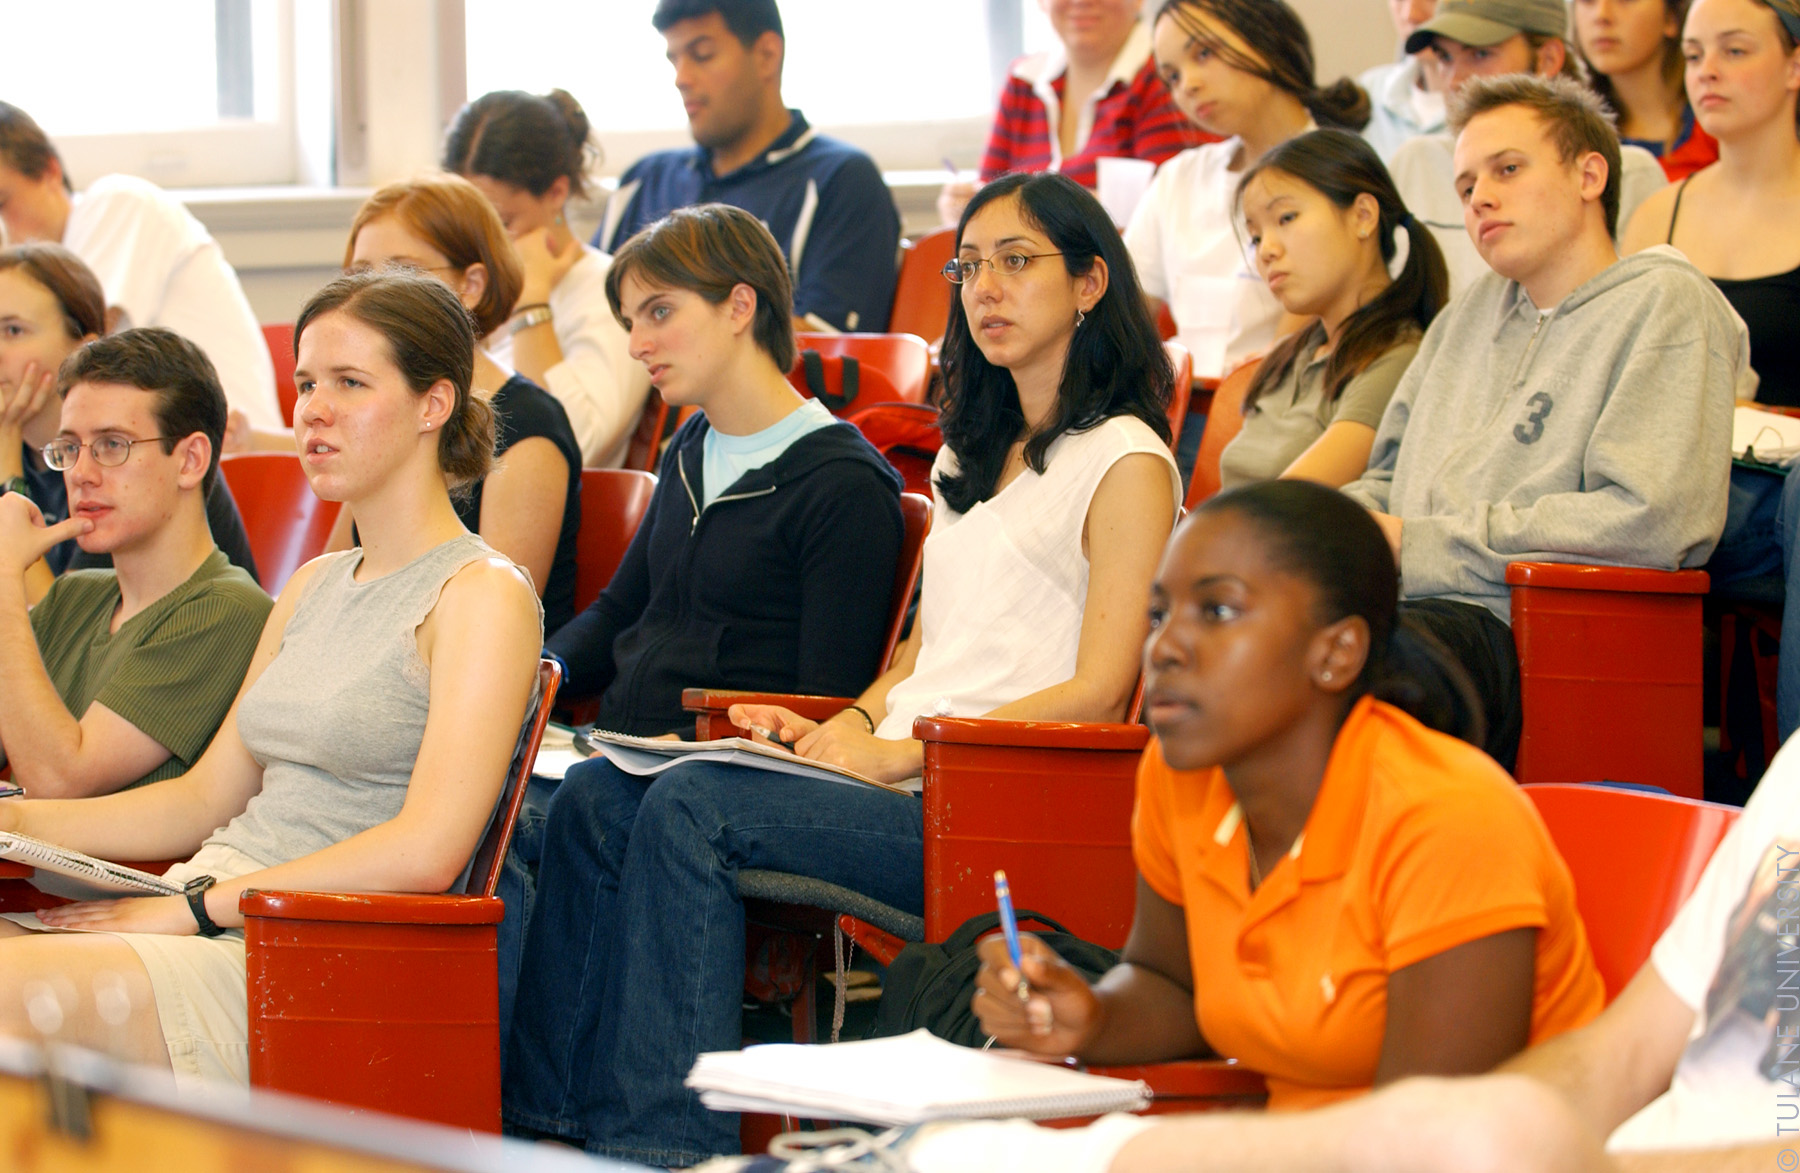 student_in_class_3618969705